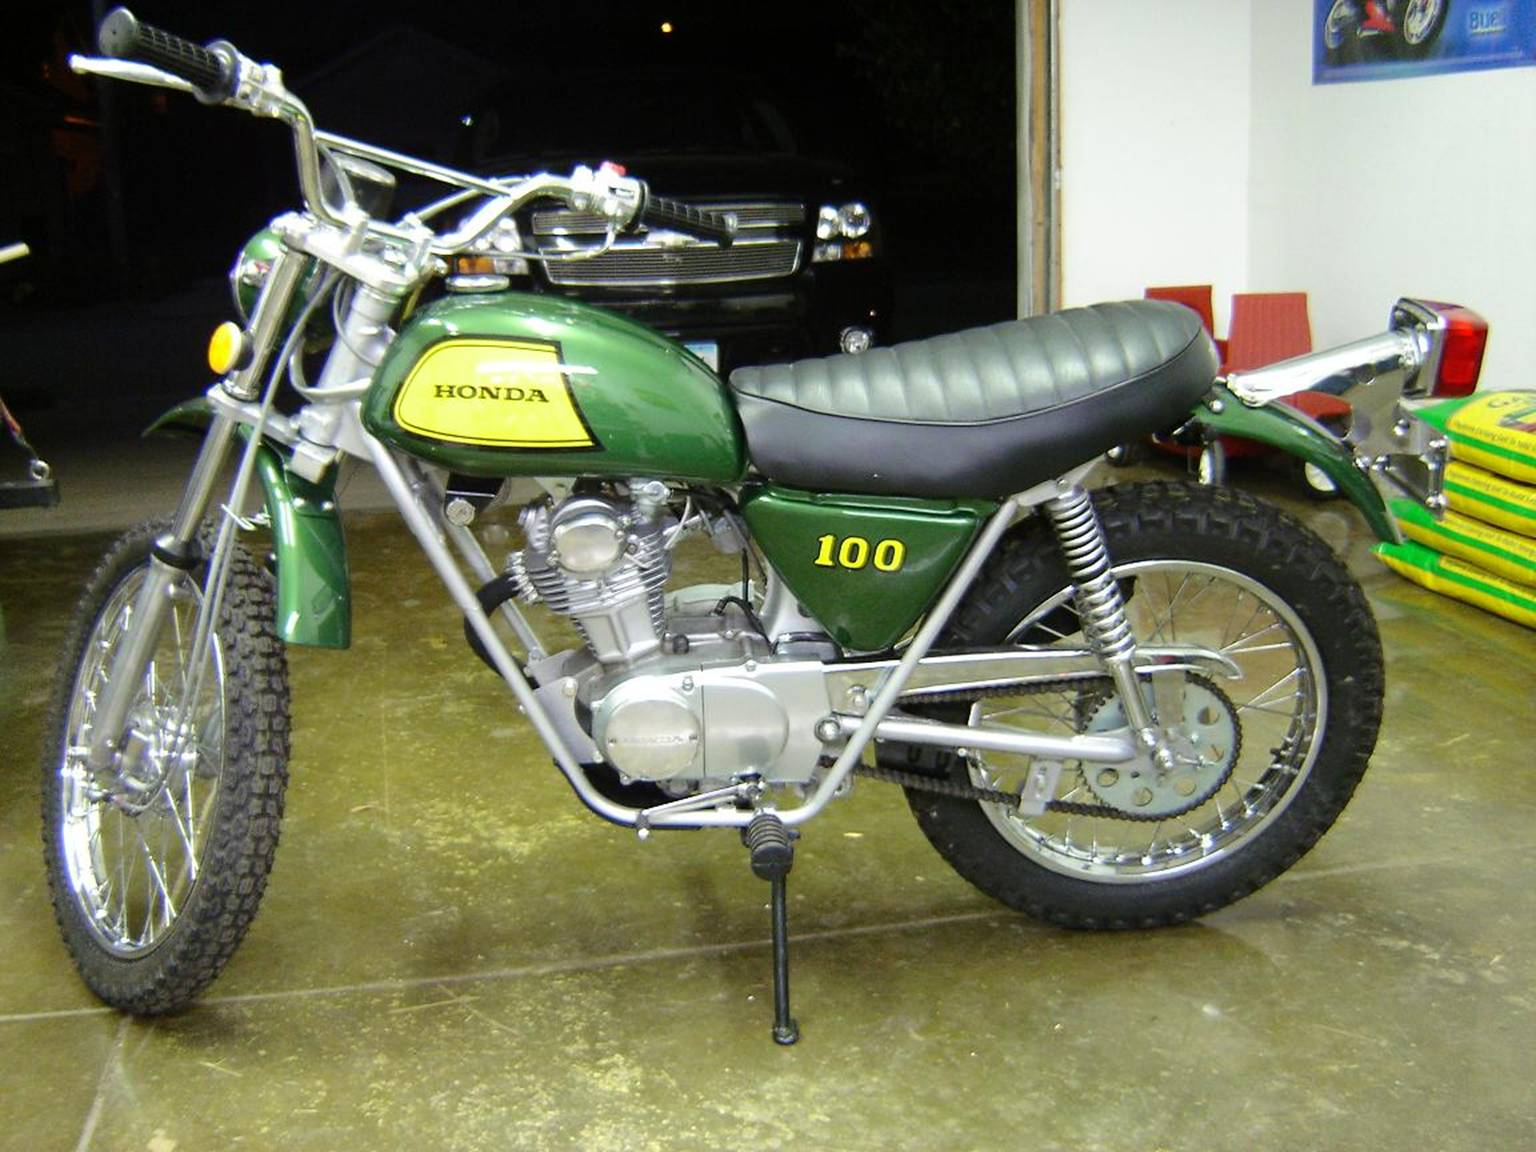 Marbles Motors 1970 Honda Ct70 Paint Colors By Marblesmotors And We Also Provided Many Parts Including The Seat Cover Nos Front Forks Rear Shocks All Chrome Zinc Plating